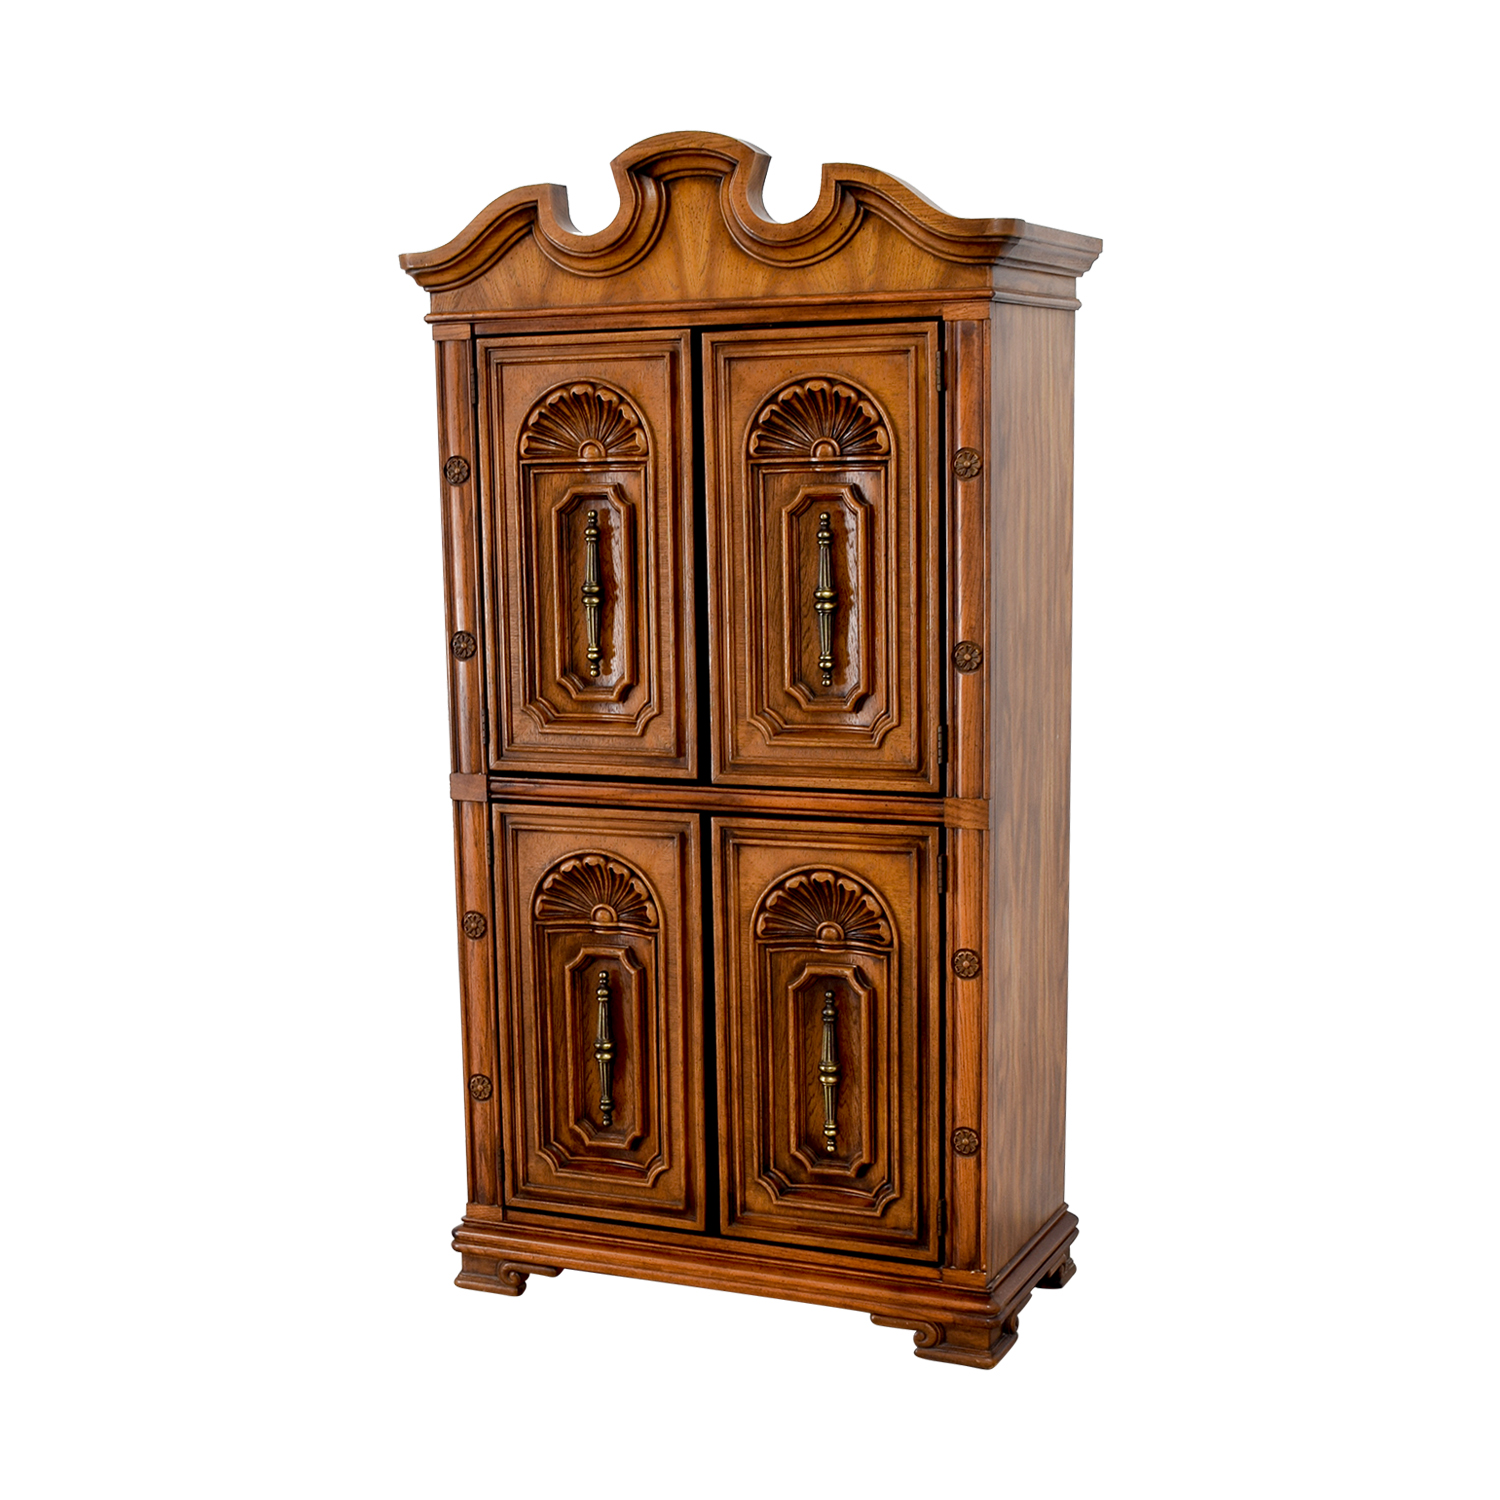 buy Seaman's Carved Wood Armoire Seaman's Wardrobes & Armoires